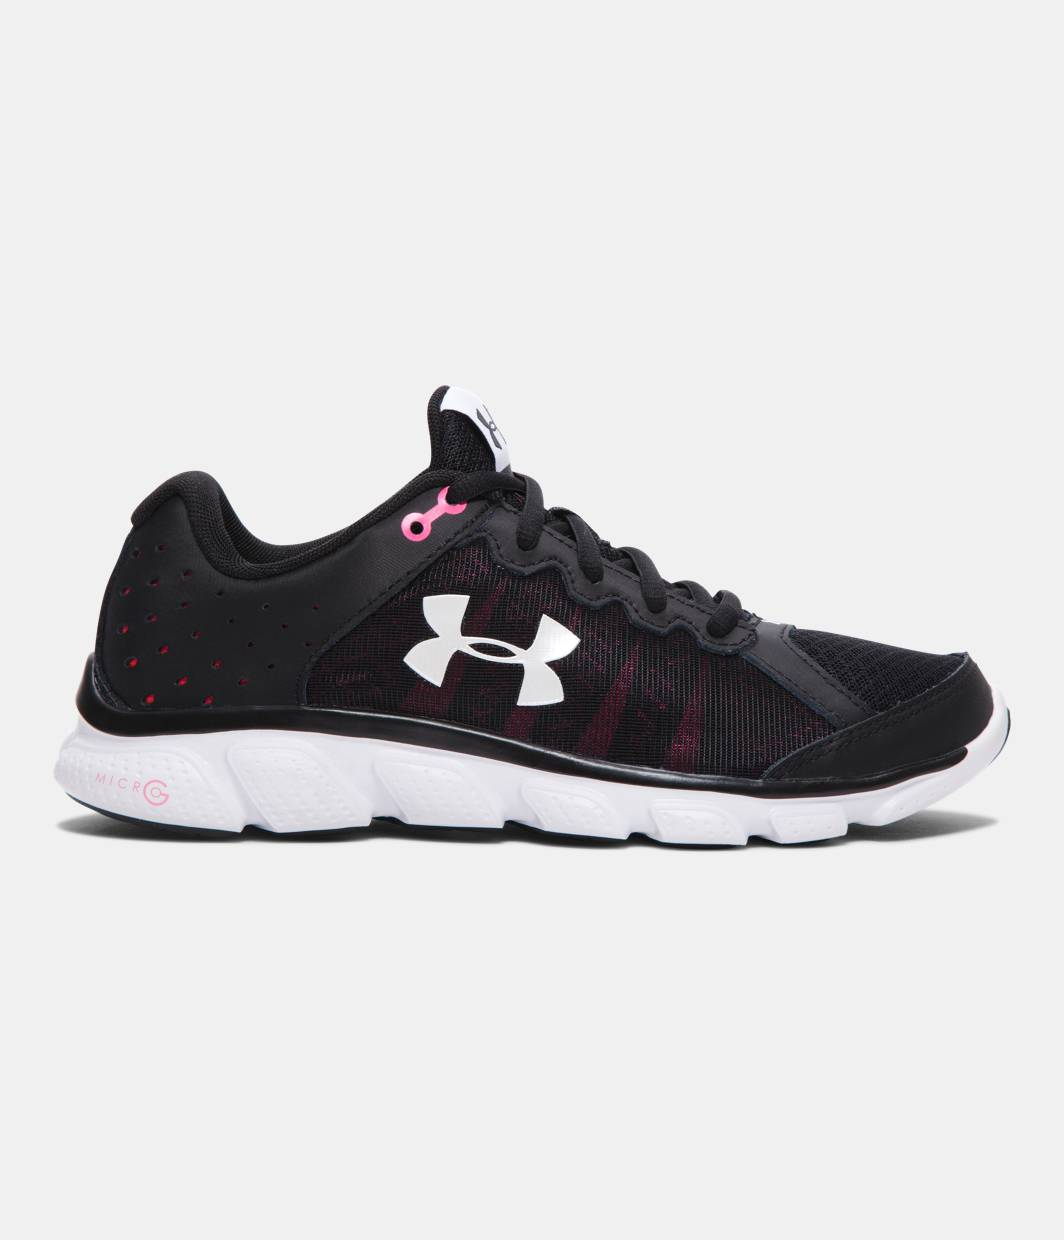 Awesome Details About Women39s Under Armour Micro G Monza Running Shoes